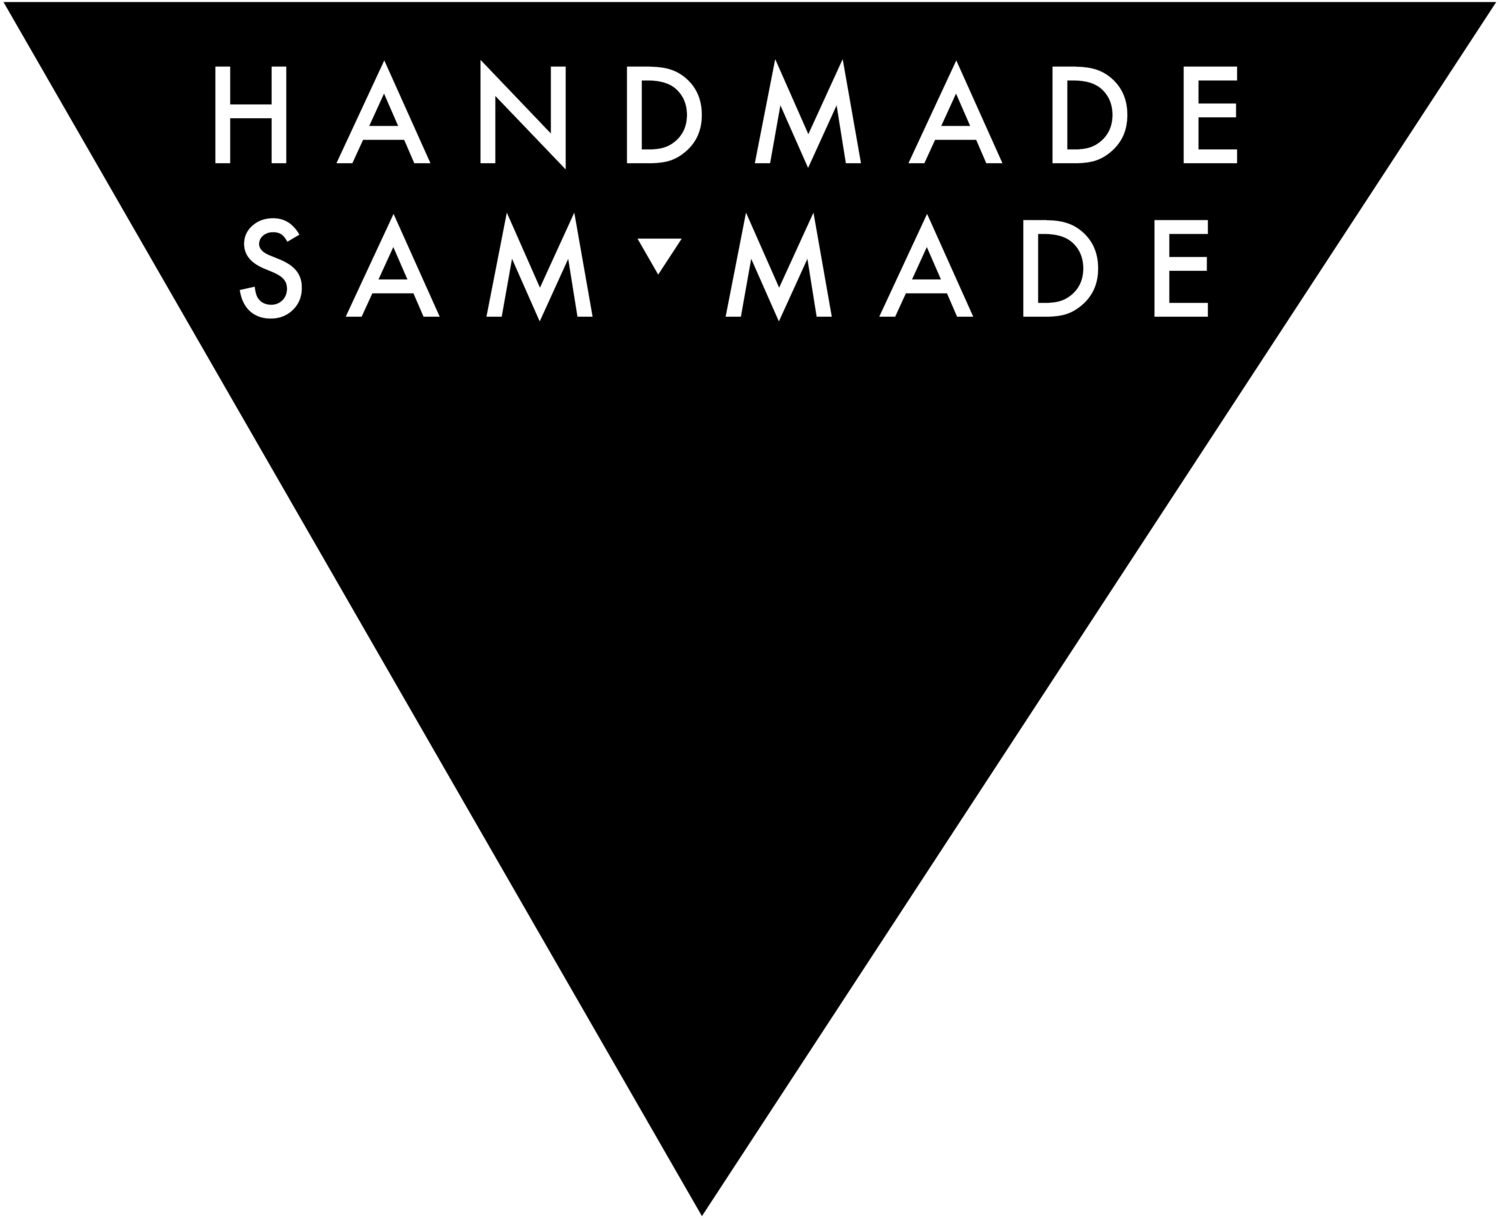 Handmade Sam*Made